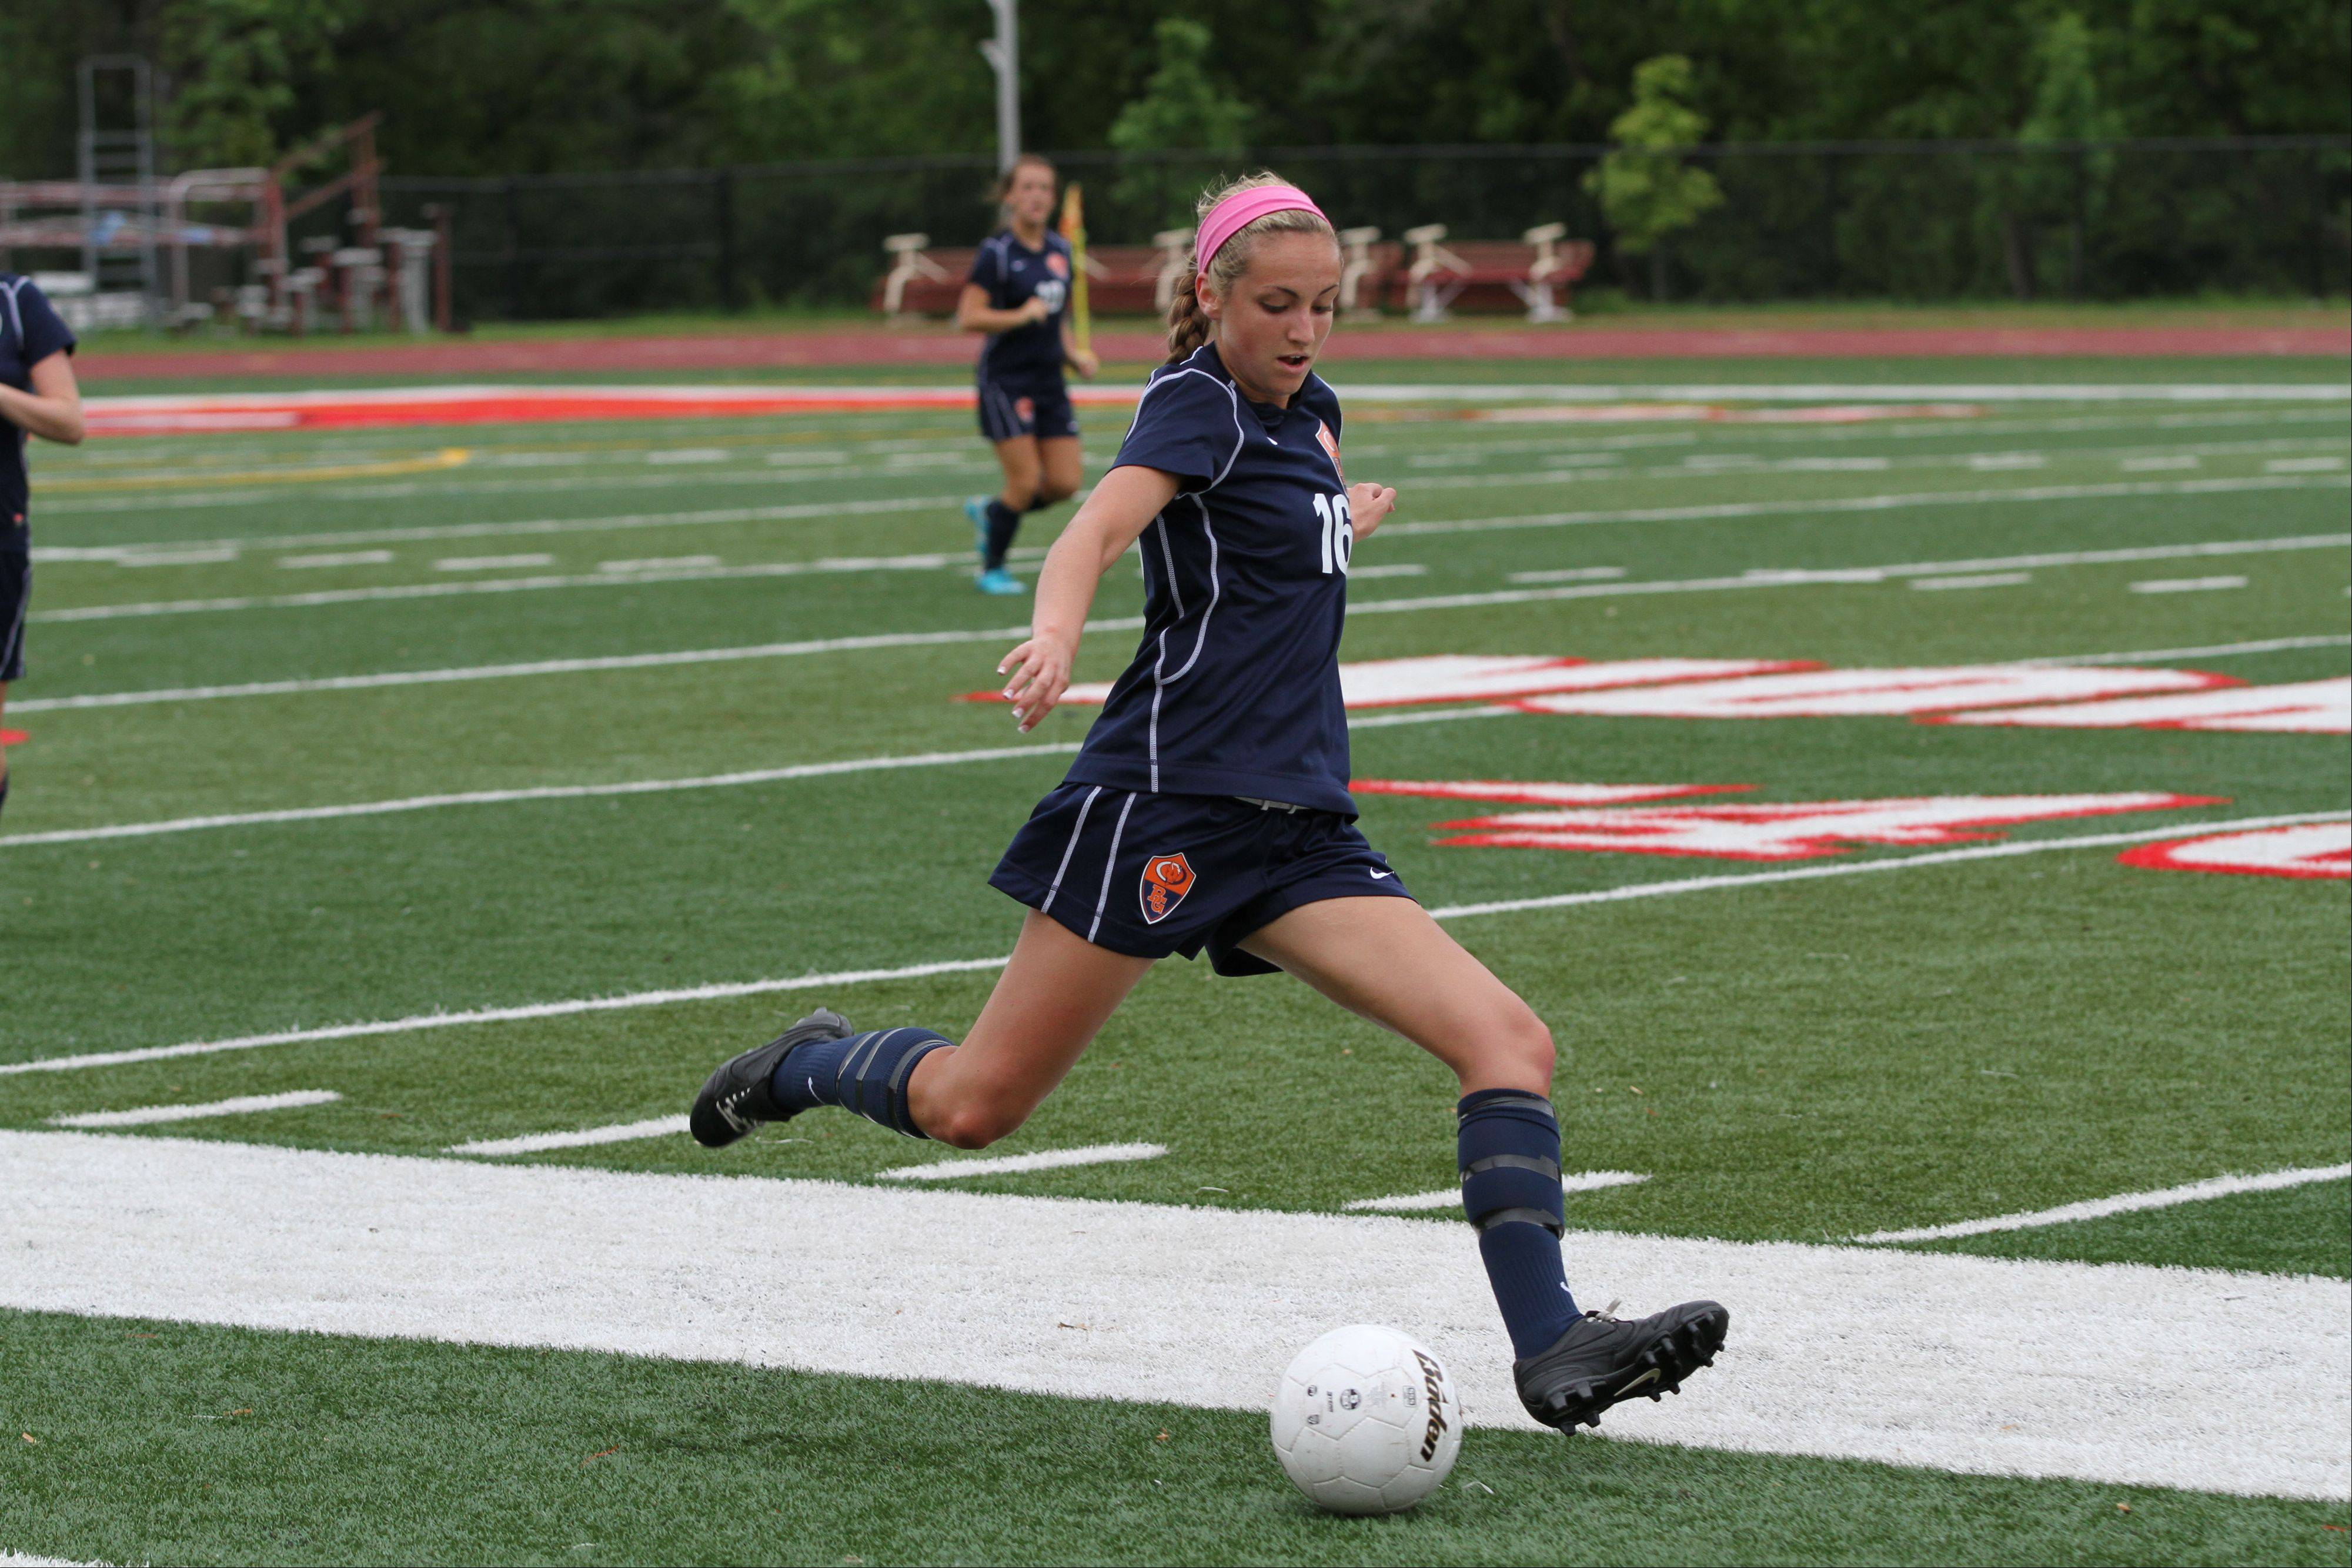 Buffalo Grove High School midfield Carly Brown kicks the ball at the girl soccer state semi-final game against Naperville North High School on Friday, May 31, 2013 at North Central College in Naperville, Ill.